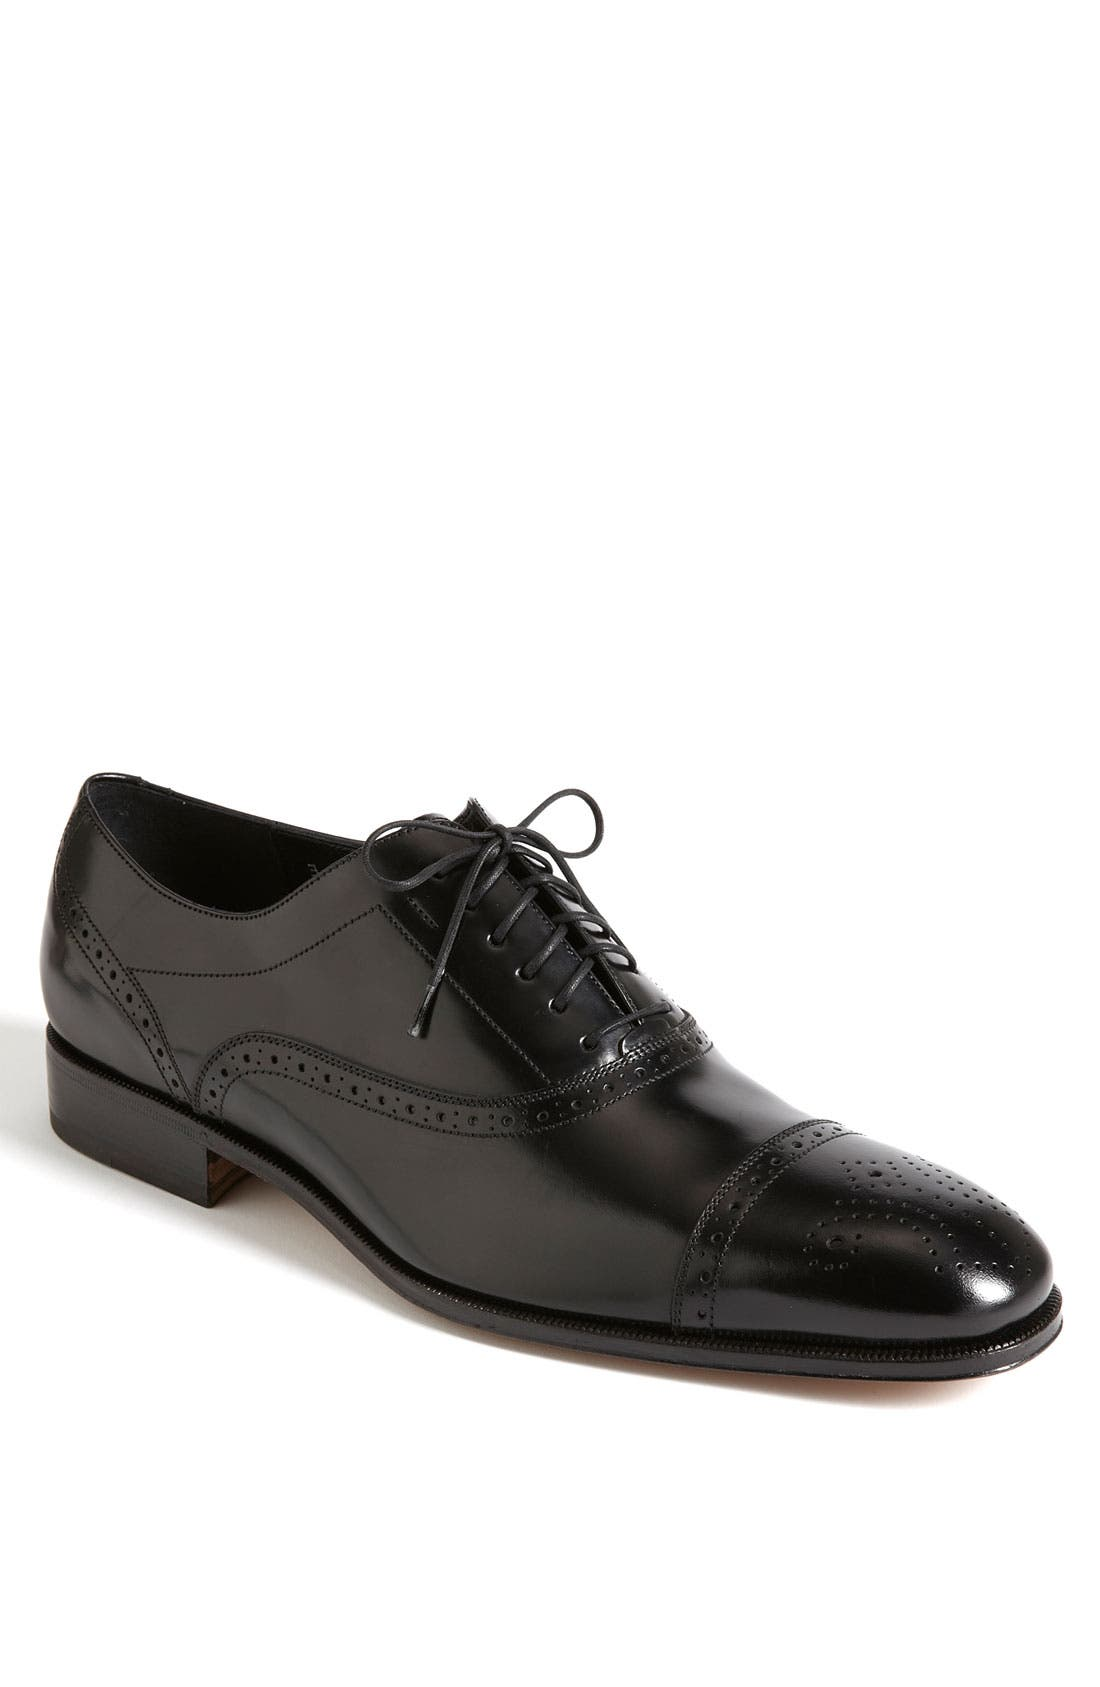 Main Image - Salvatore Ferragamo 'Caesy' Cap Toe Oxford